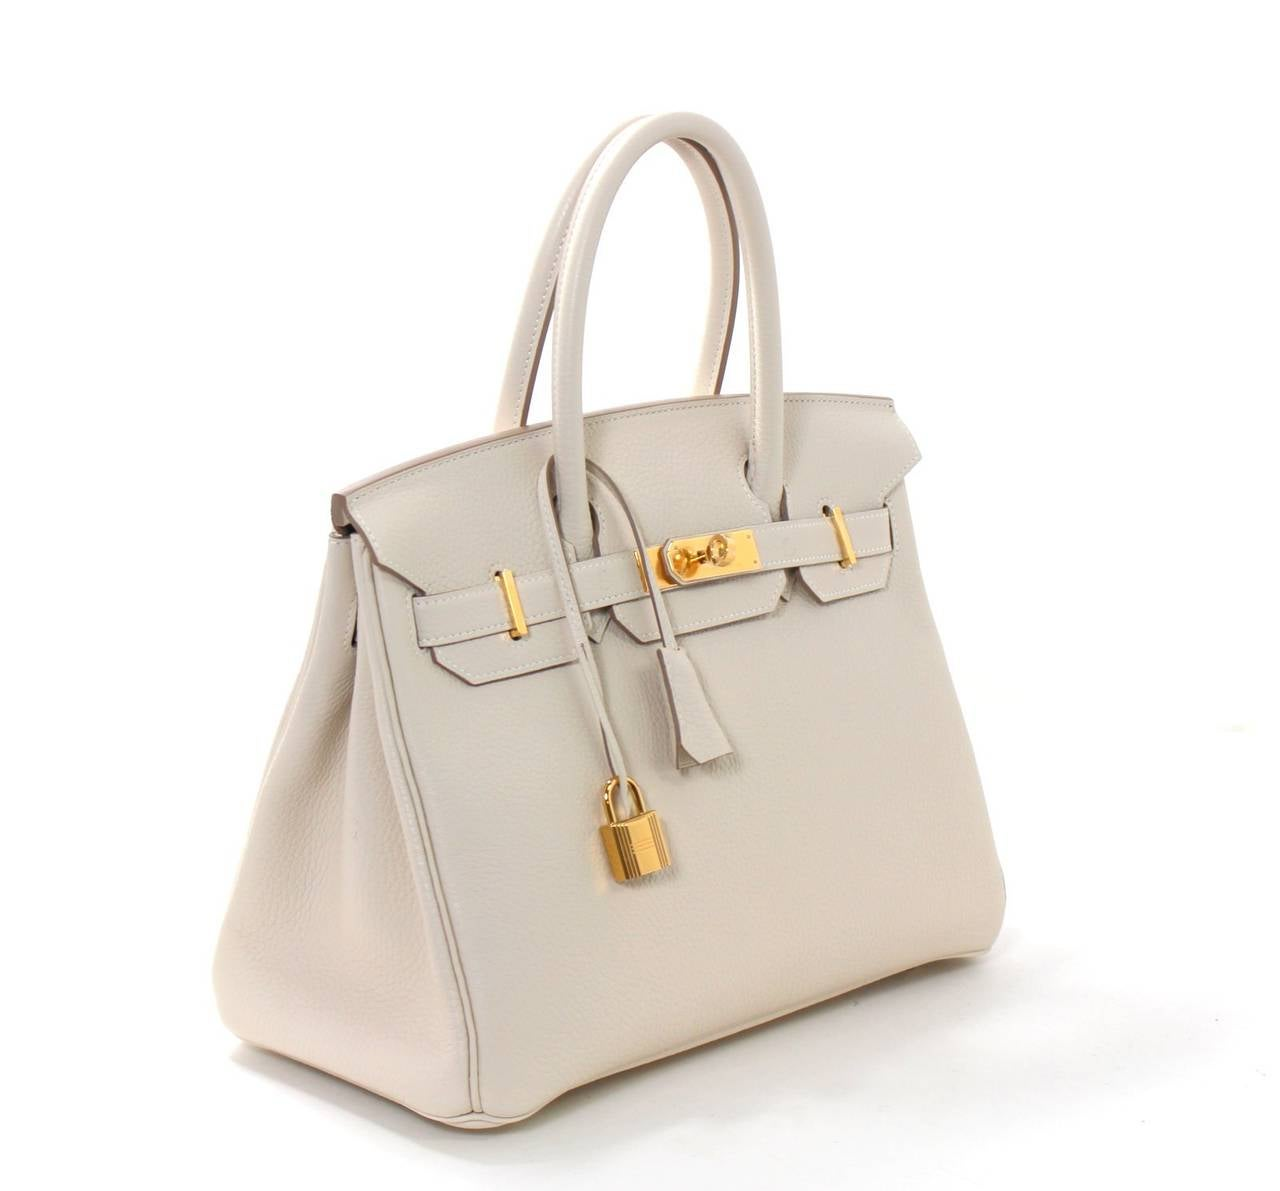 Hermes Birkin Bag in Craie Clemence with Gold- Bone color 30 cm 3